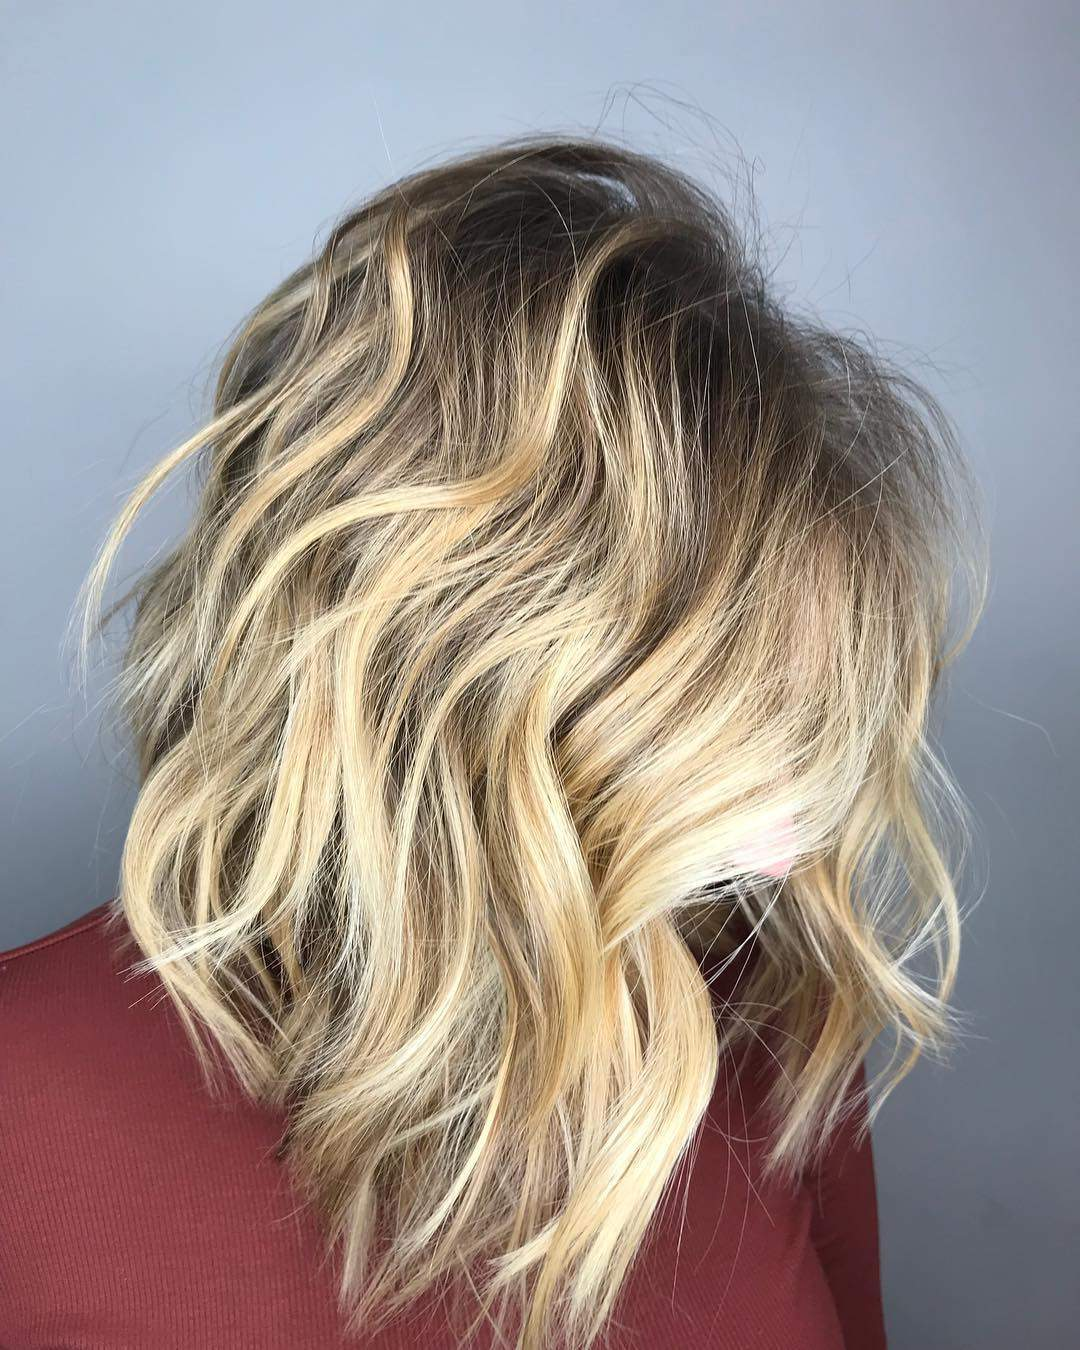 Perfect haircuts that do not require styling